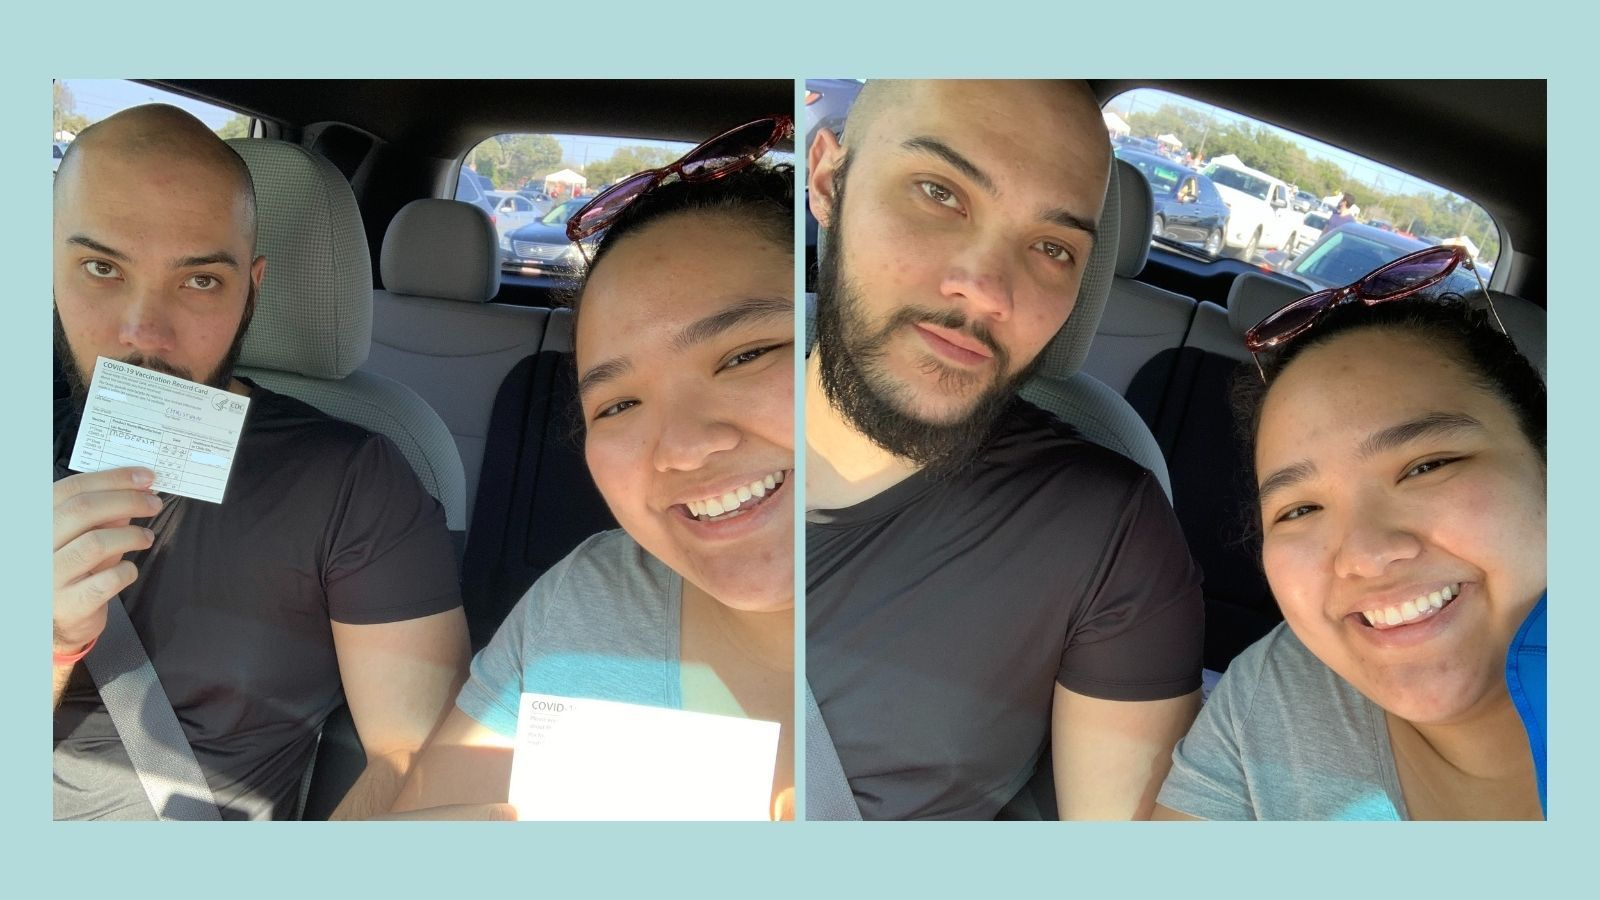 Sam and Christian holding up their CDC vaccine cards and smiling in two photos while sitting in a car